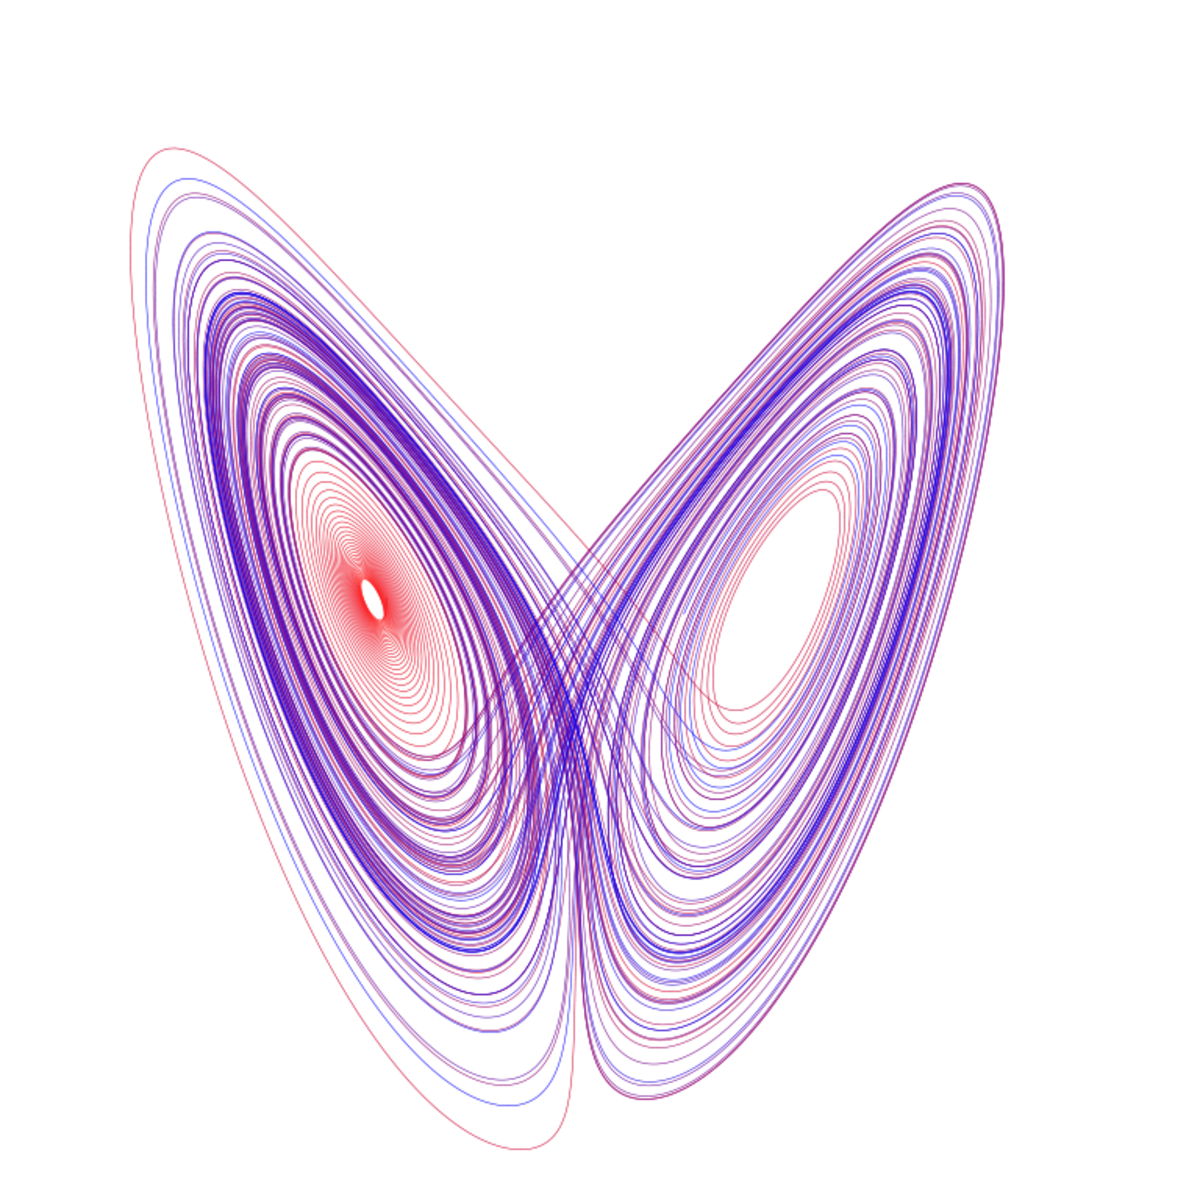 The Lorenz attractor has deterministic boundary conditions but follows a chaotic and completely random path. This is the nature of chaos theory which is used to model nonlinear systems and phenomena such as fluids, gases, ecosystems, and economies.